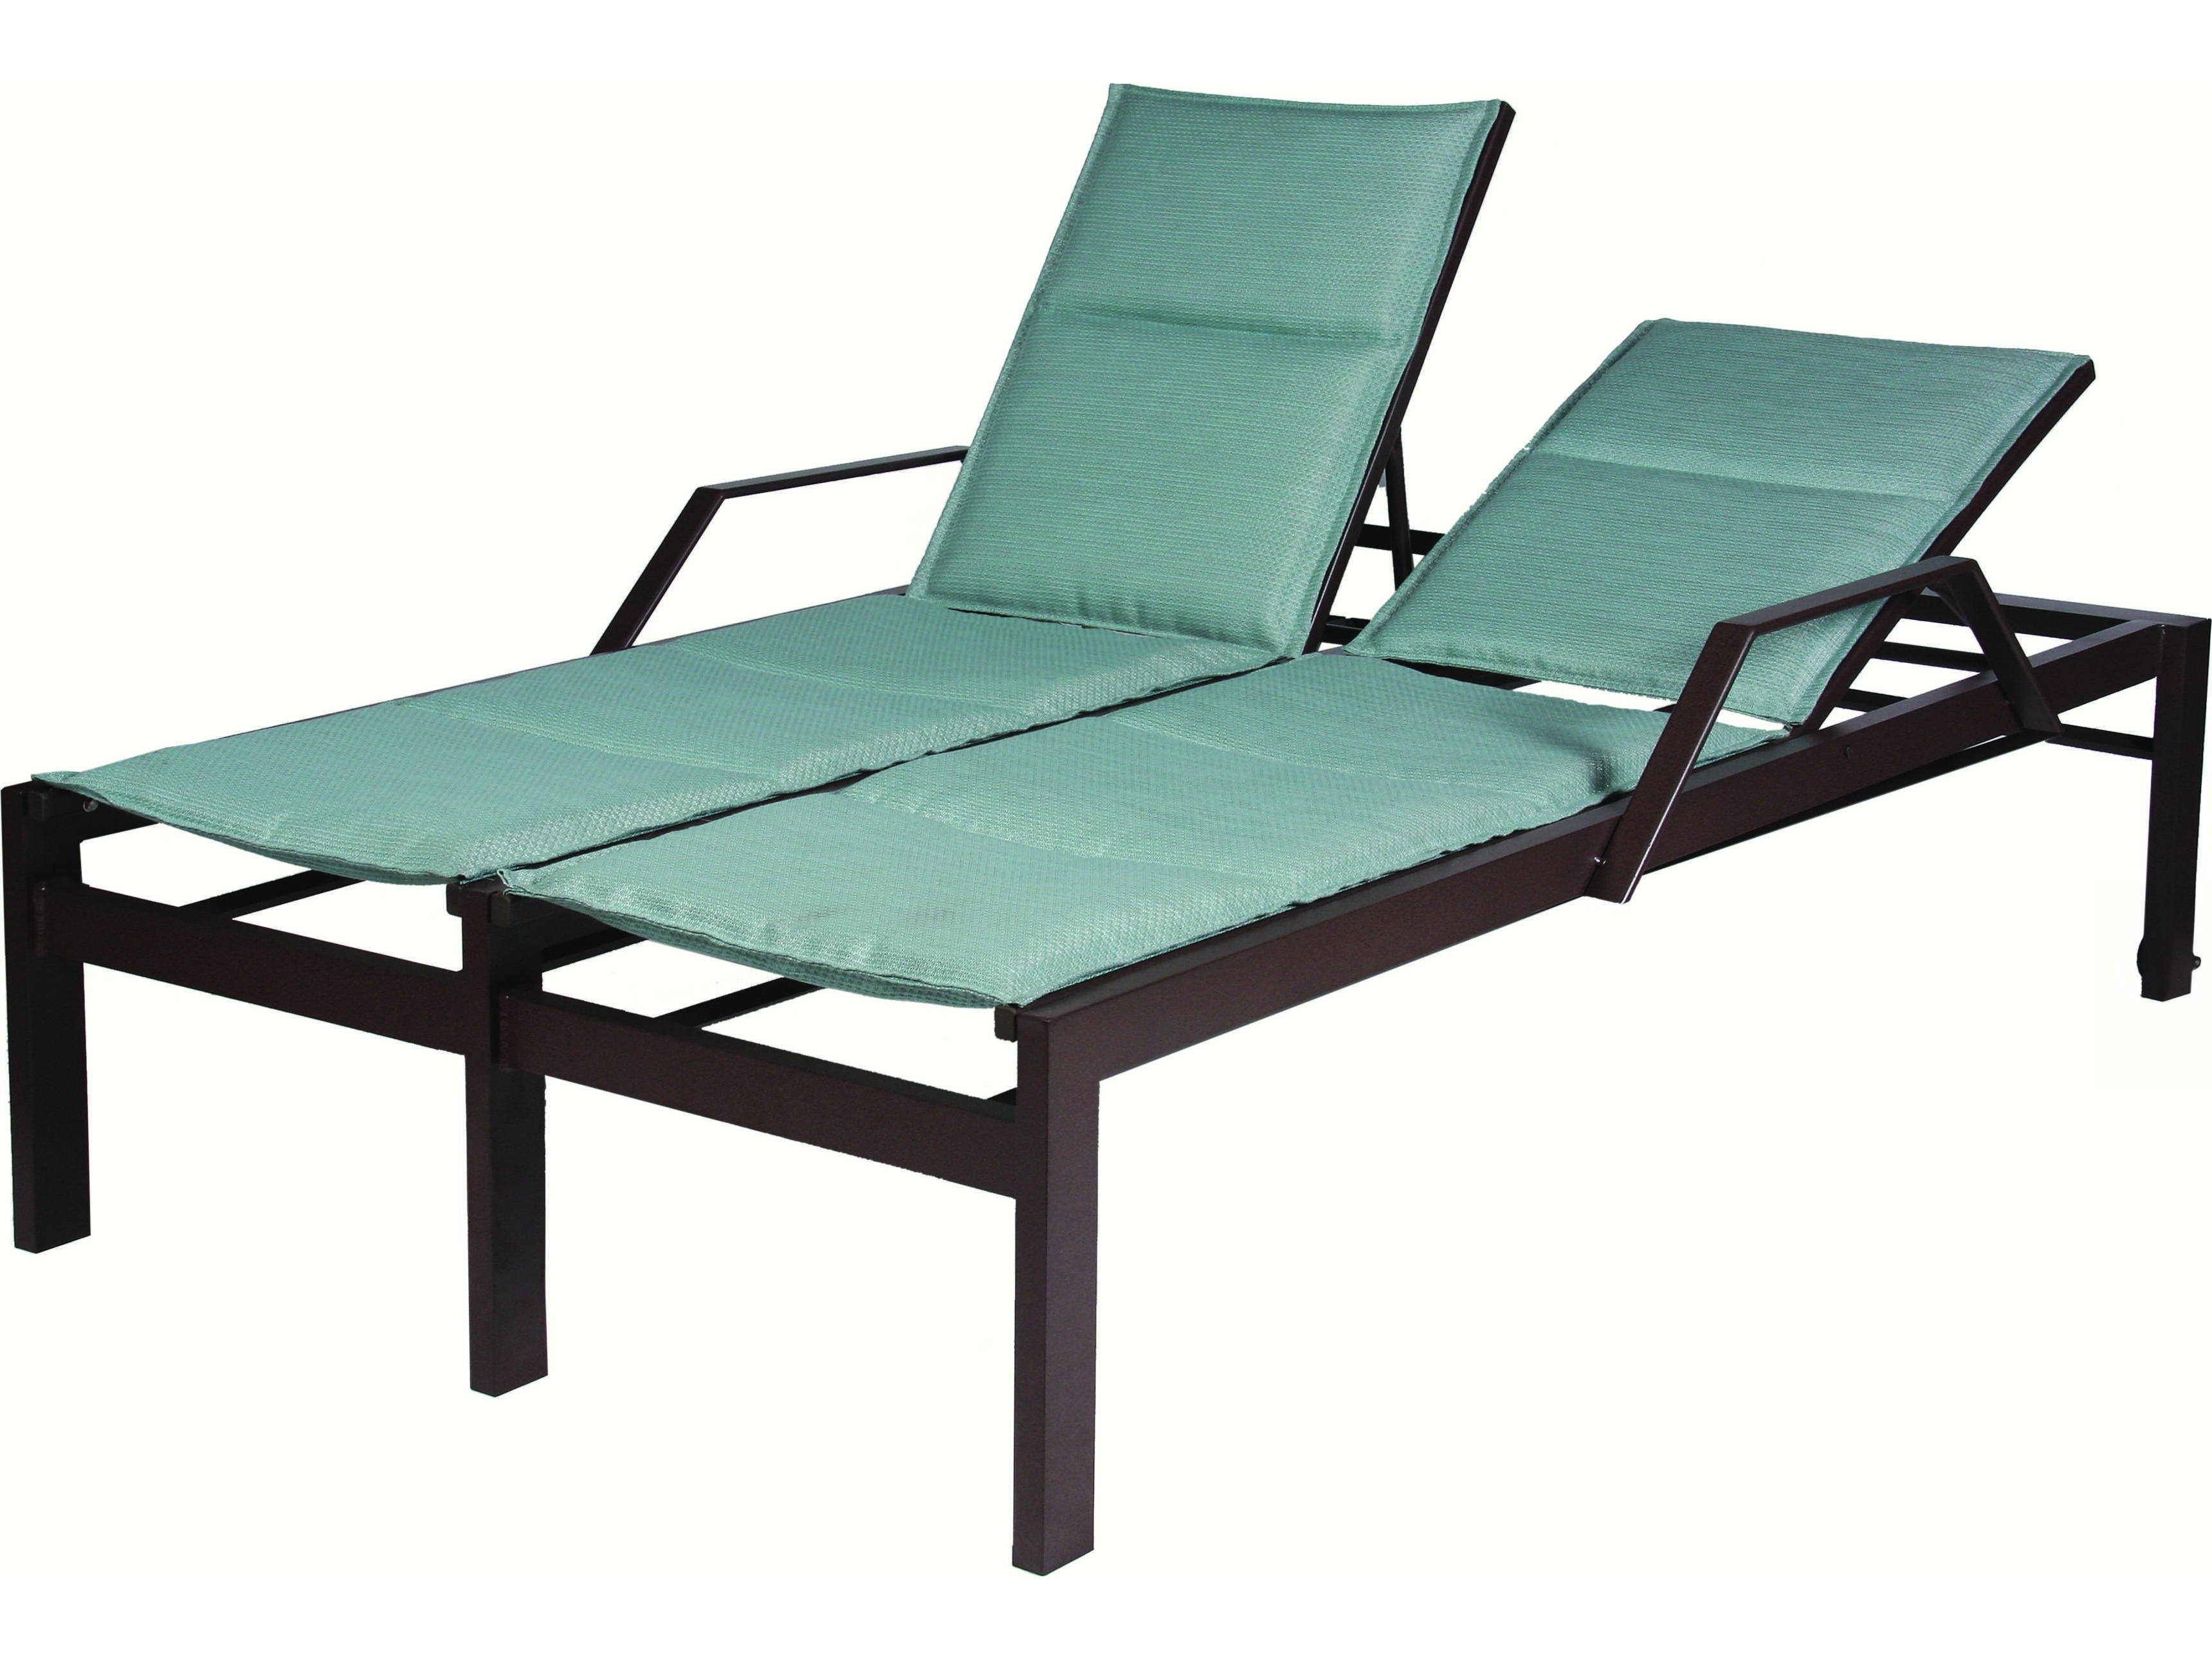 Cast Aluminum Chaise Lounges With Wheels Pertaining To Current Suncoast Vectra Bold Sling Cast Aluminum Double Chaise Lounge With (View 7 of 15)